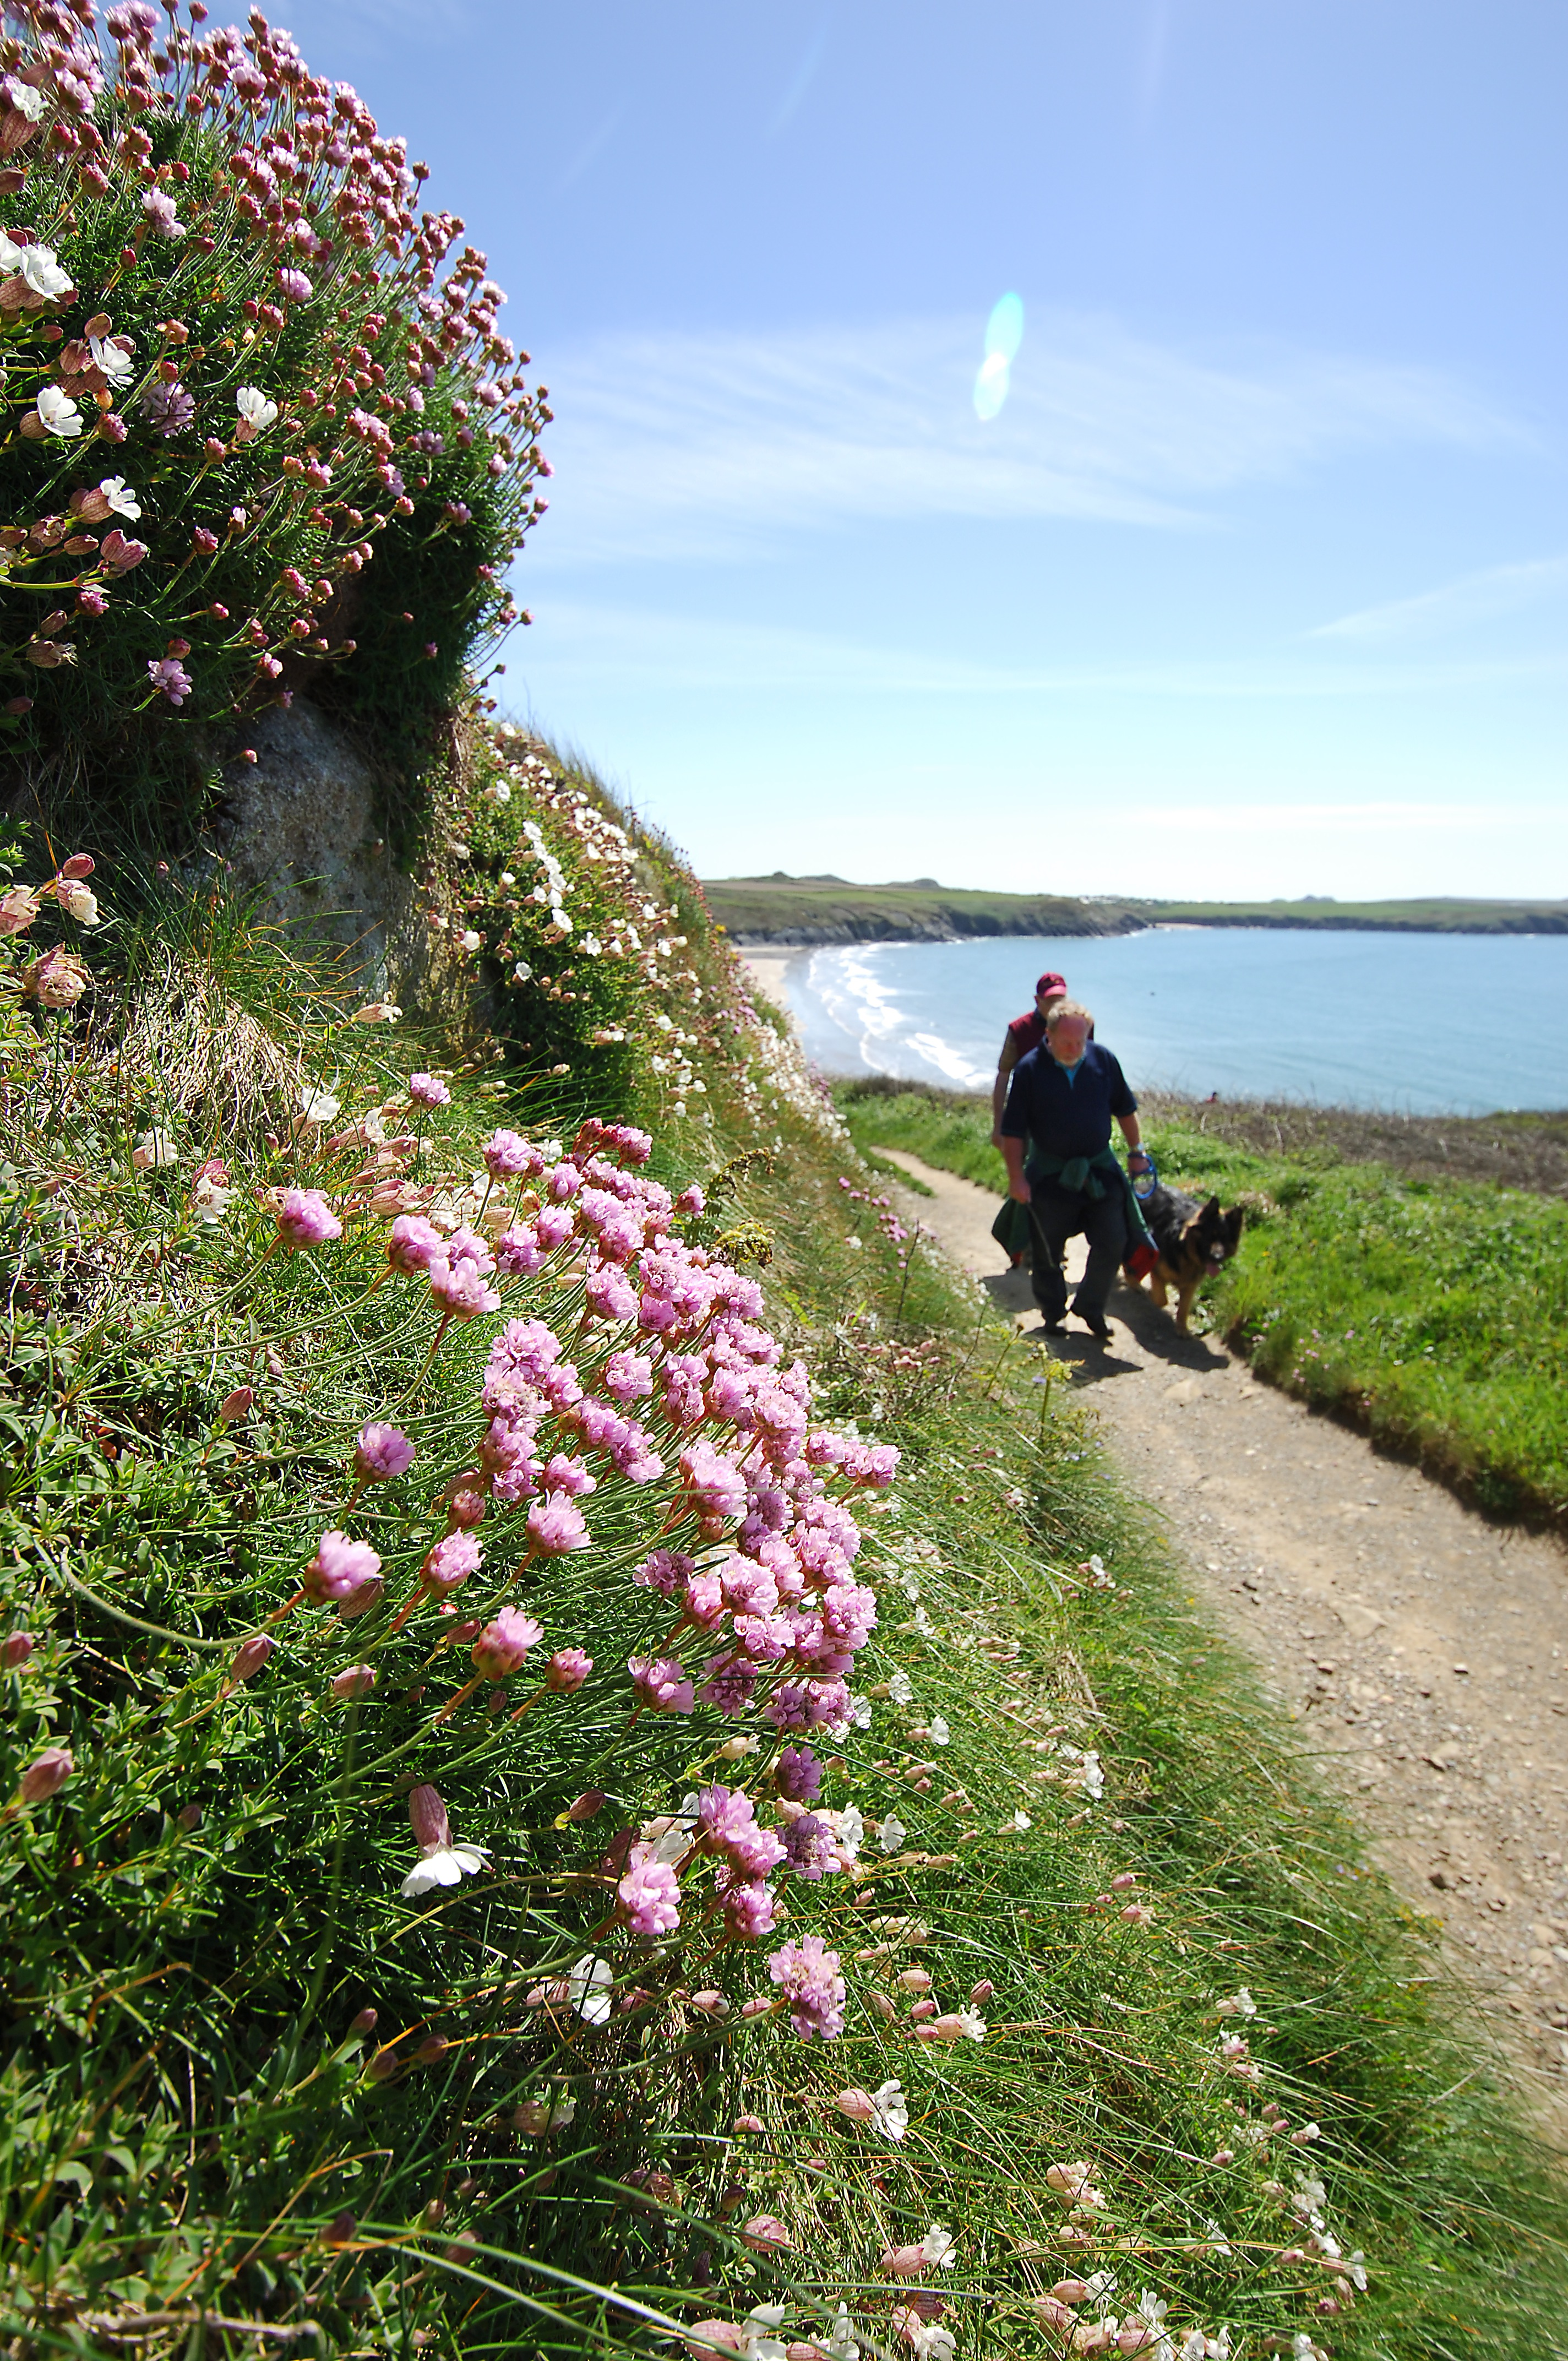 Dog walkers on the Pembrokeshire Coast Path National Trail near Whitesands